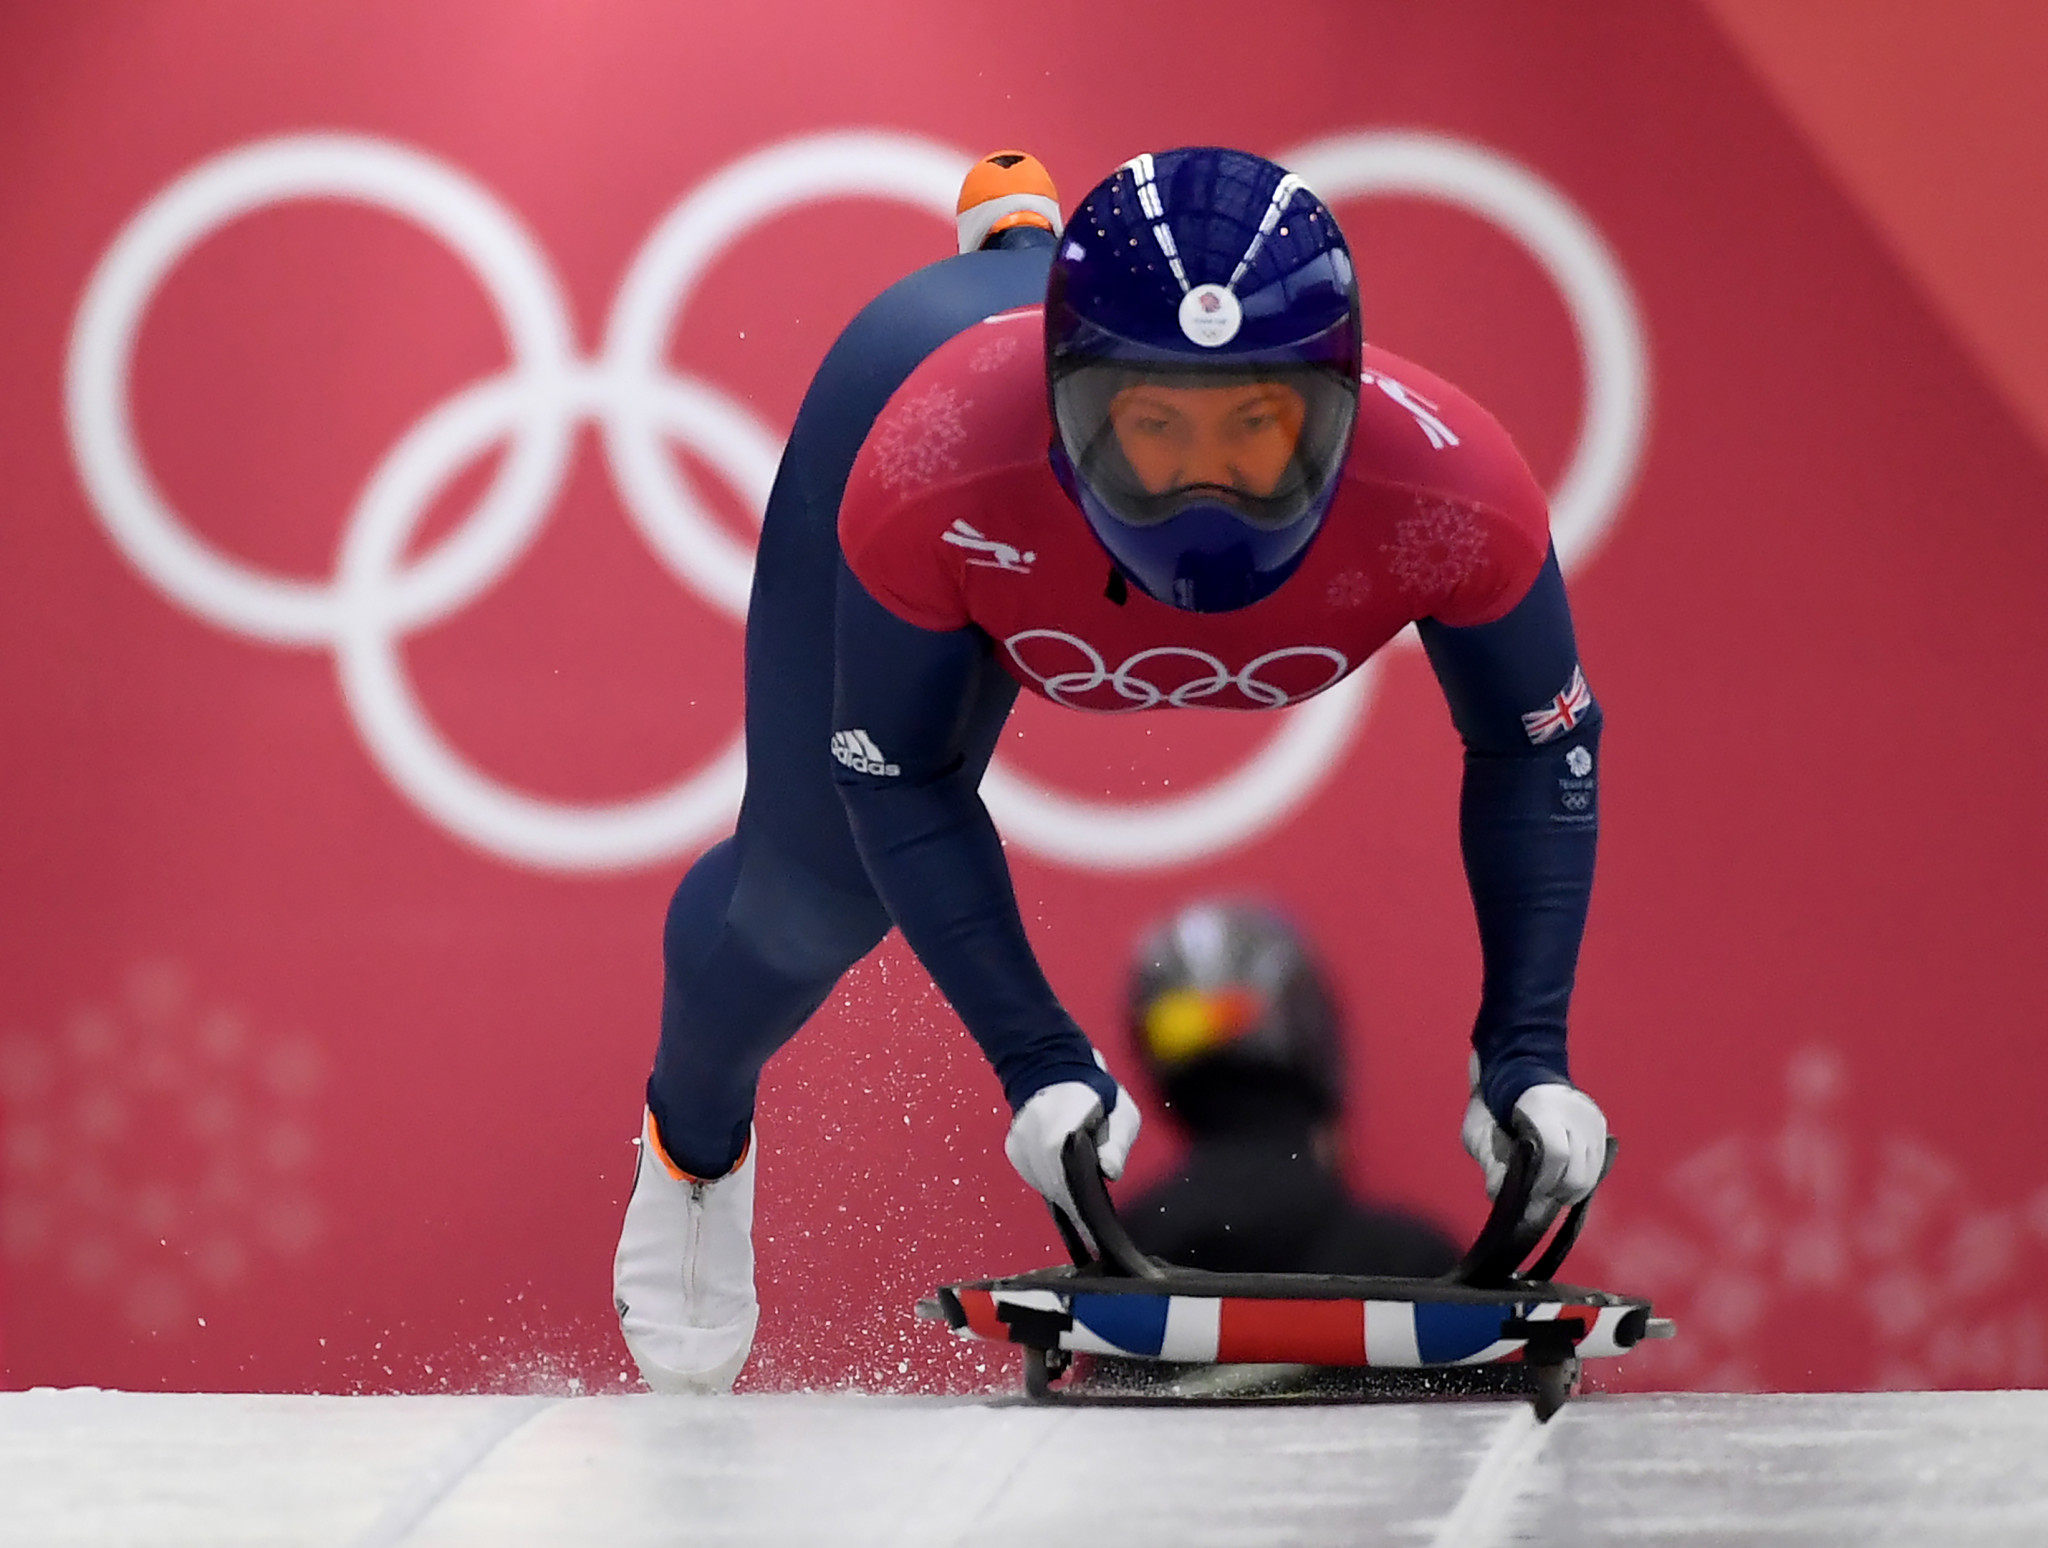 Britain's Lizzy Yarnold is among those to have threatened to snub members of the OAR team ©Getty Images